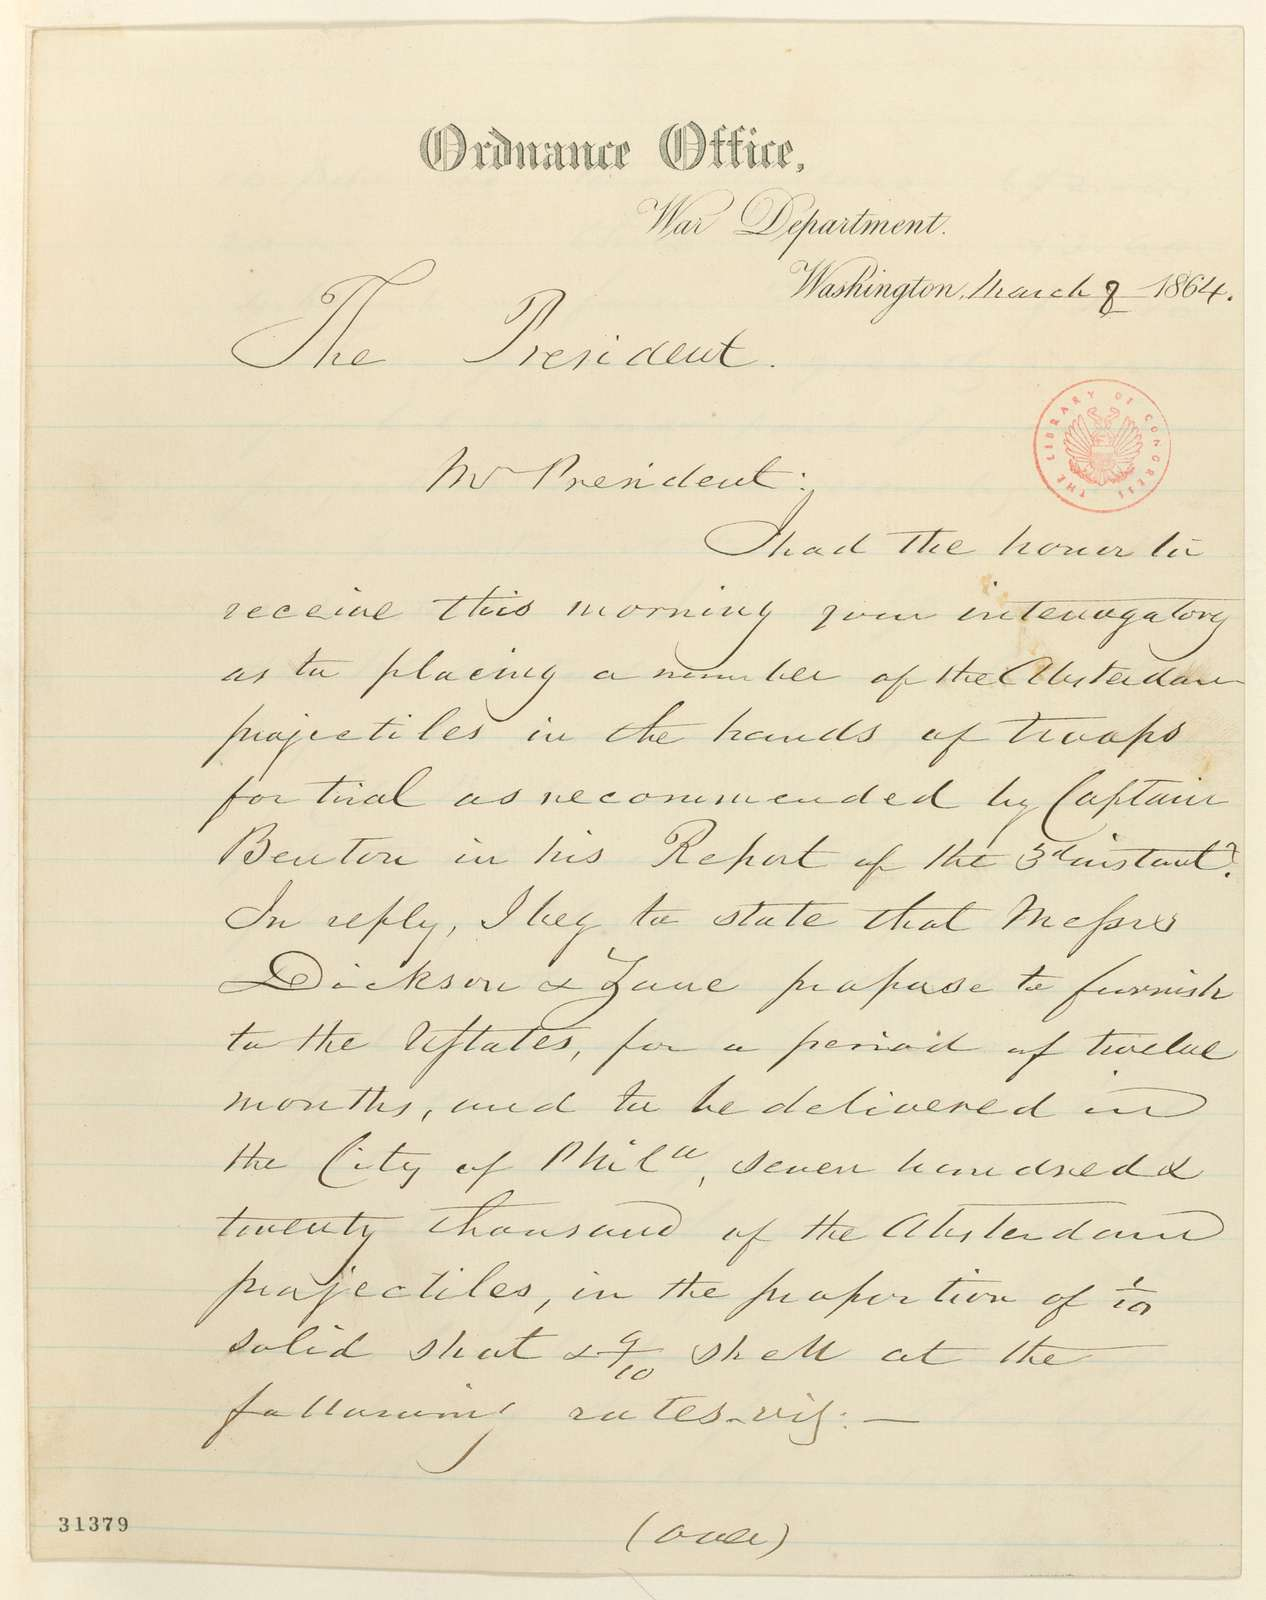 Abraham Lincoln papers: Series 1. General Correspondence. 1833-1916: George D. Ramsay to Abraham Lincoln, Tuesday, March 08, 1864 (Absterdam projectiles; endorsed by Abraham Lincoln, March 10, 1864)